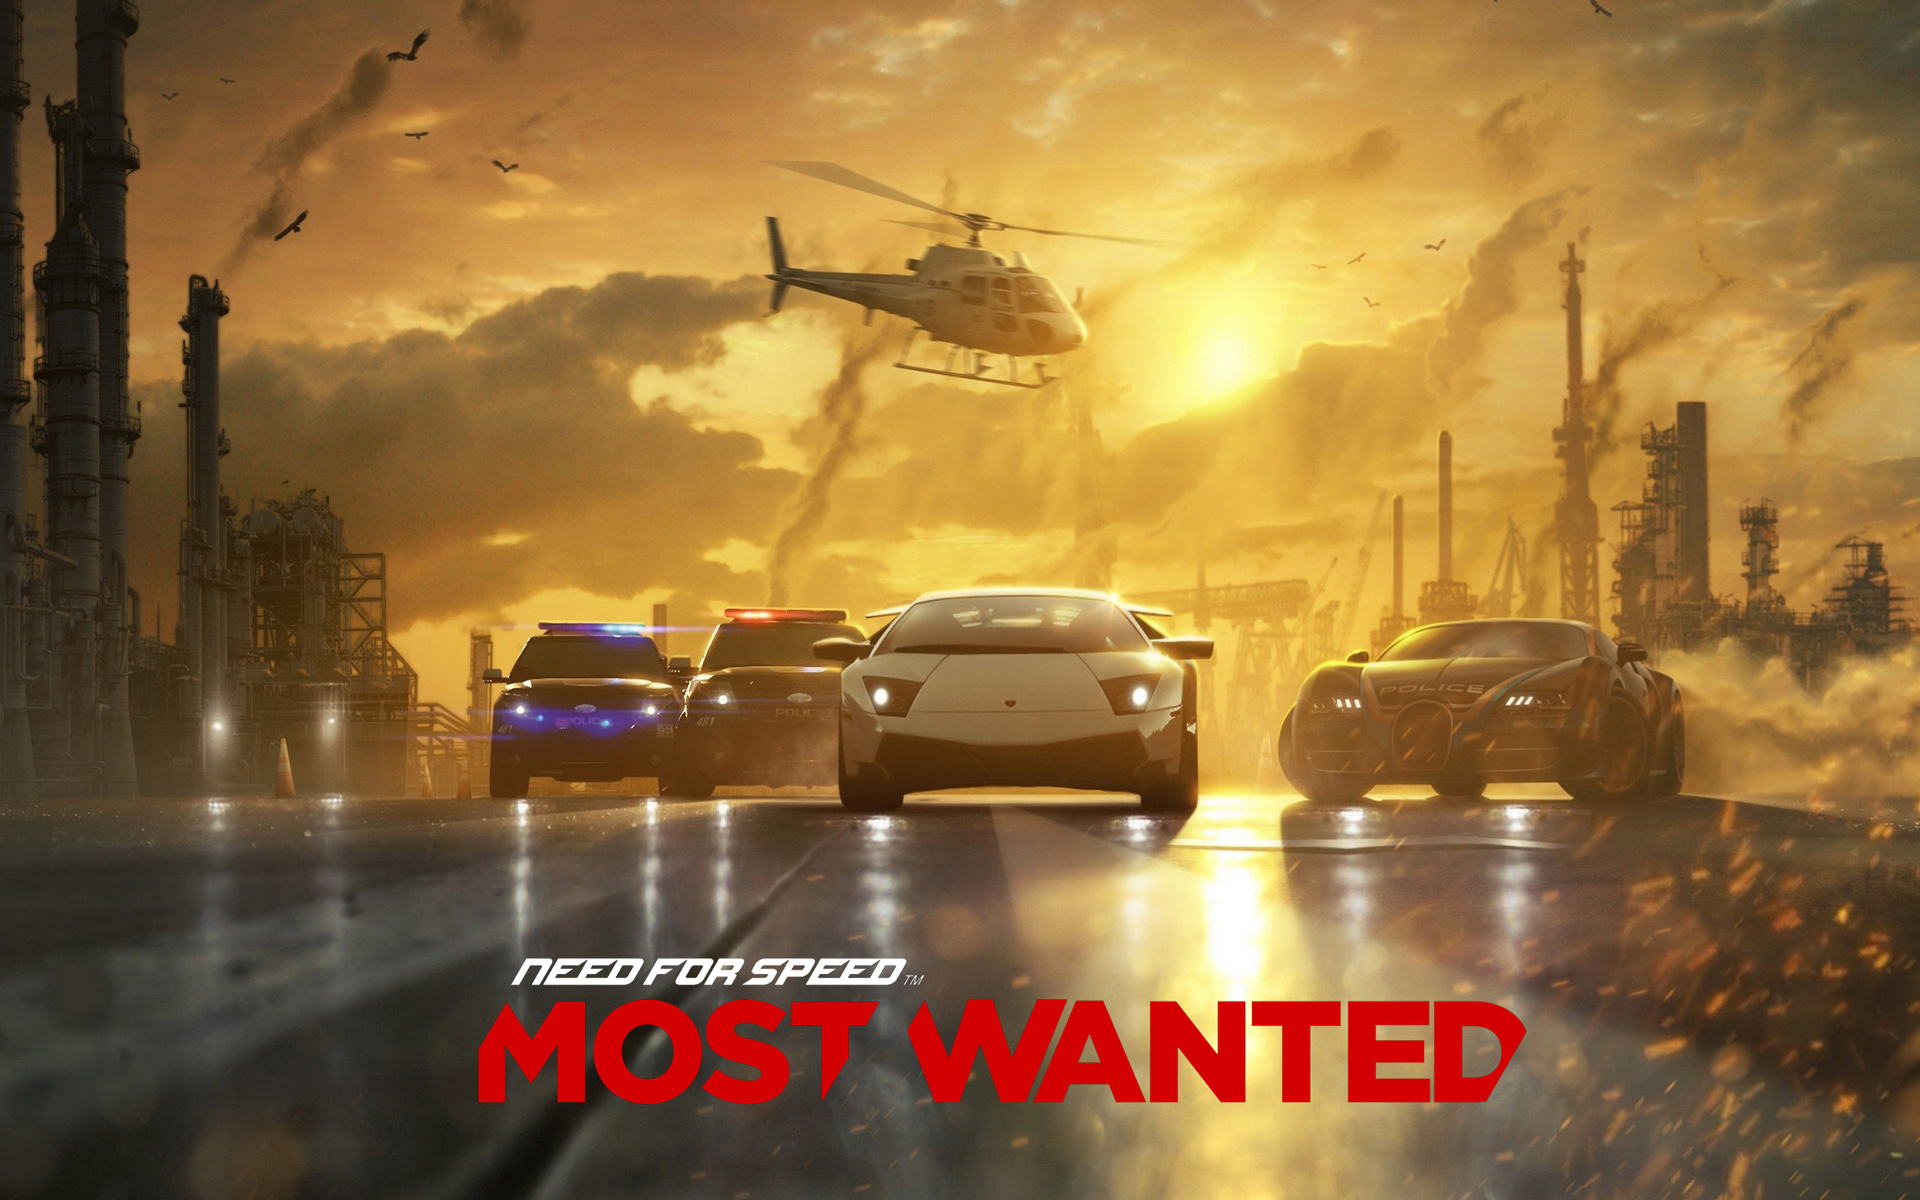 Una buena excusa para usar Origin, adquirir Need for Speed: Most Wanted gratis